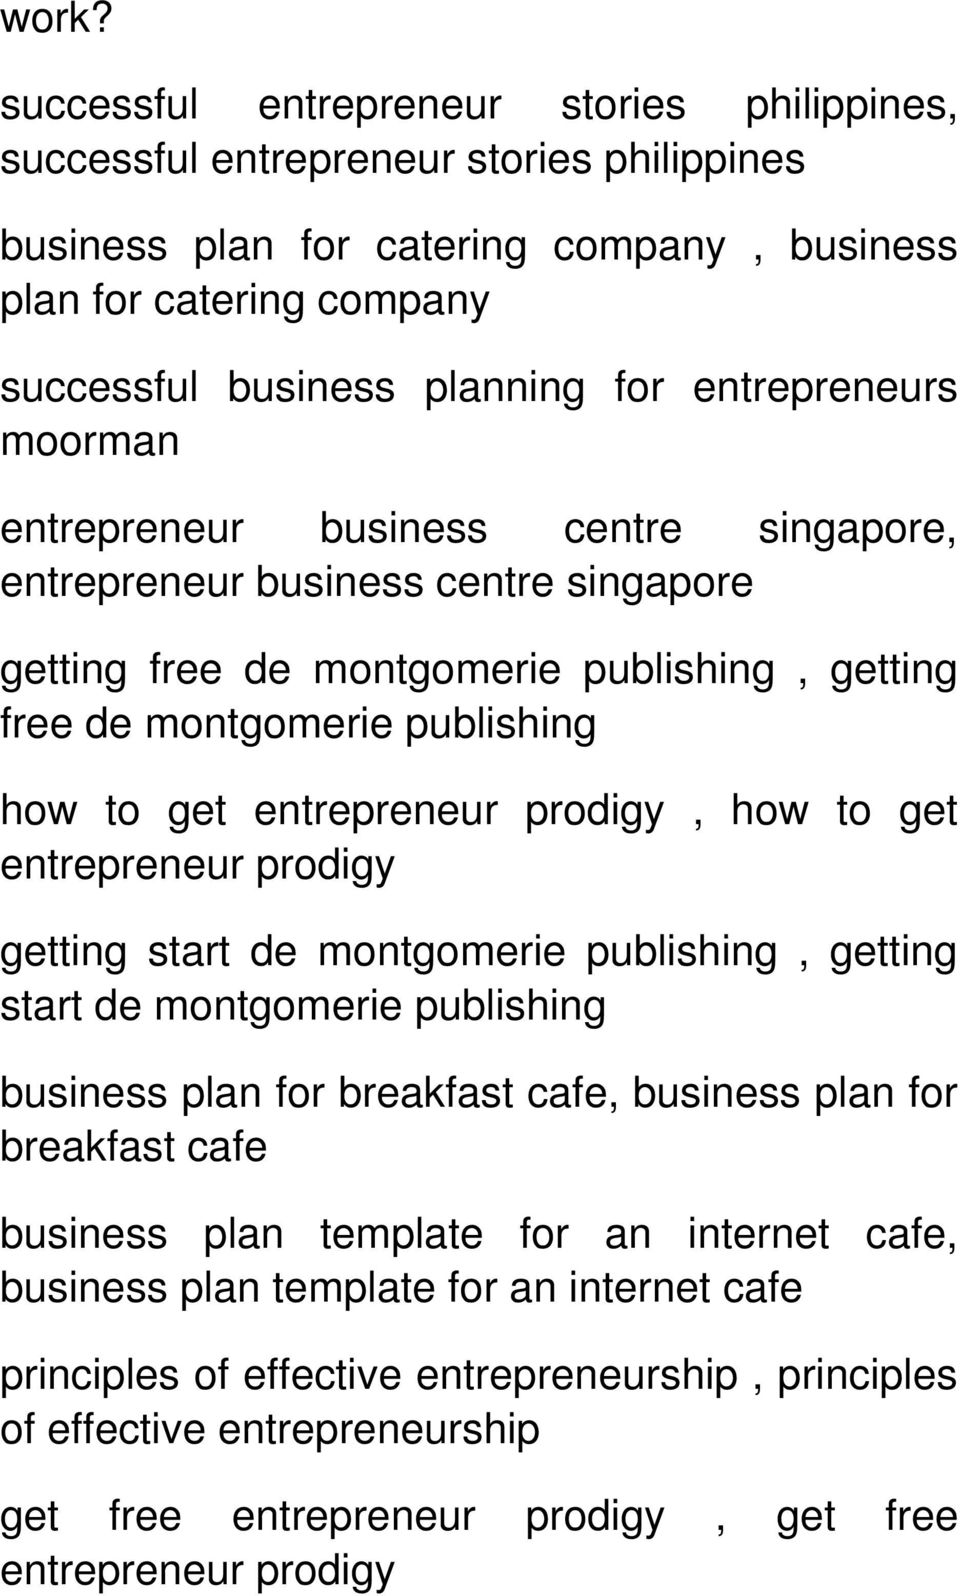 A successful entrepreneur in india business plan template for a prodigy how to get entrepreneur prodigy getting start de getting start de business plan wajeb Choice Image